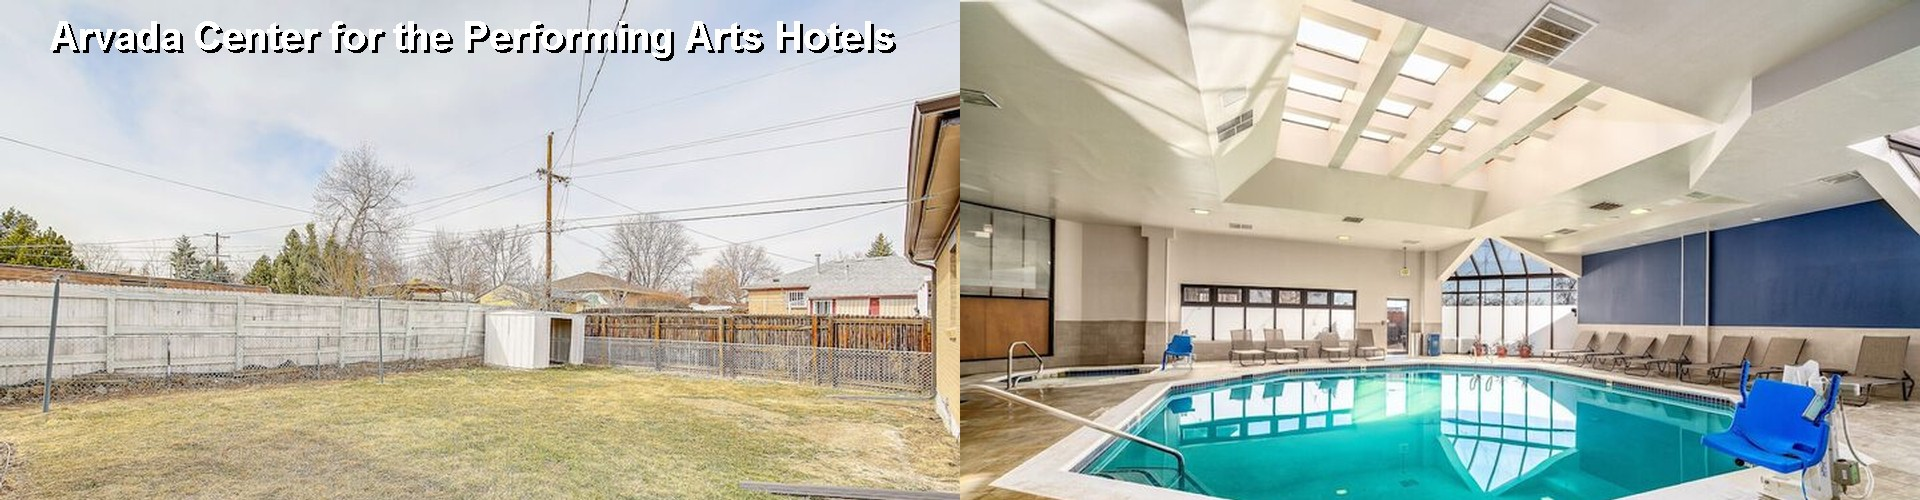 5 Best Hotels near Arvada Center for the Performing Arts